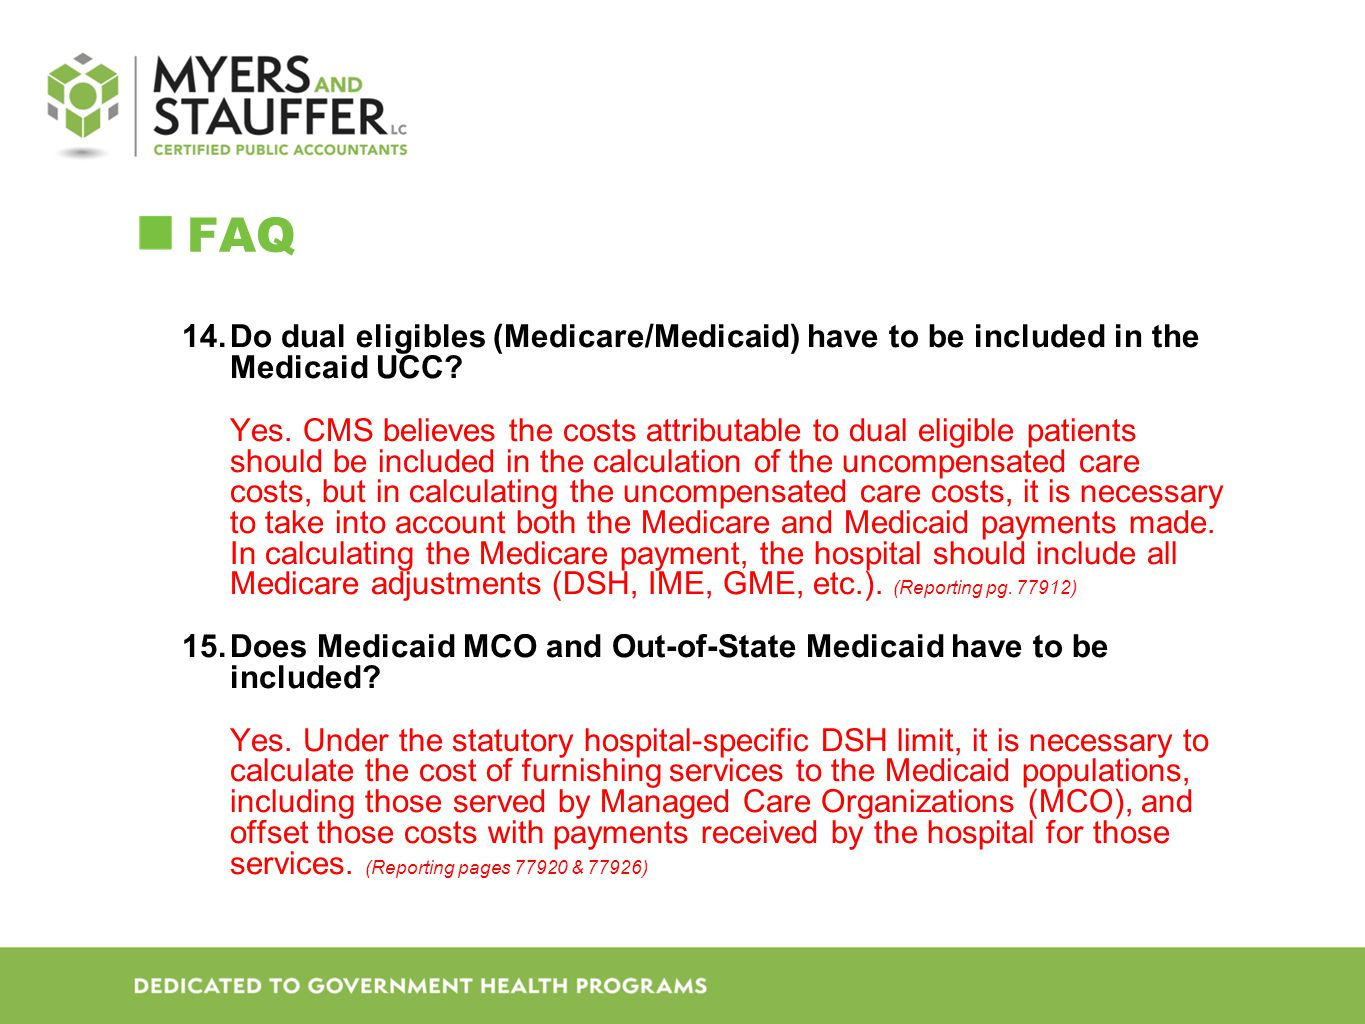 FAQ Do dual eligibles (Medicare/Medicaid) have to be included in the Medicaid UCC